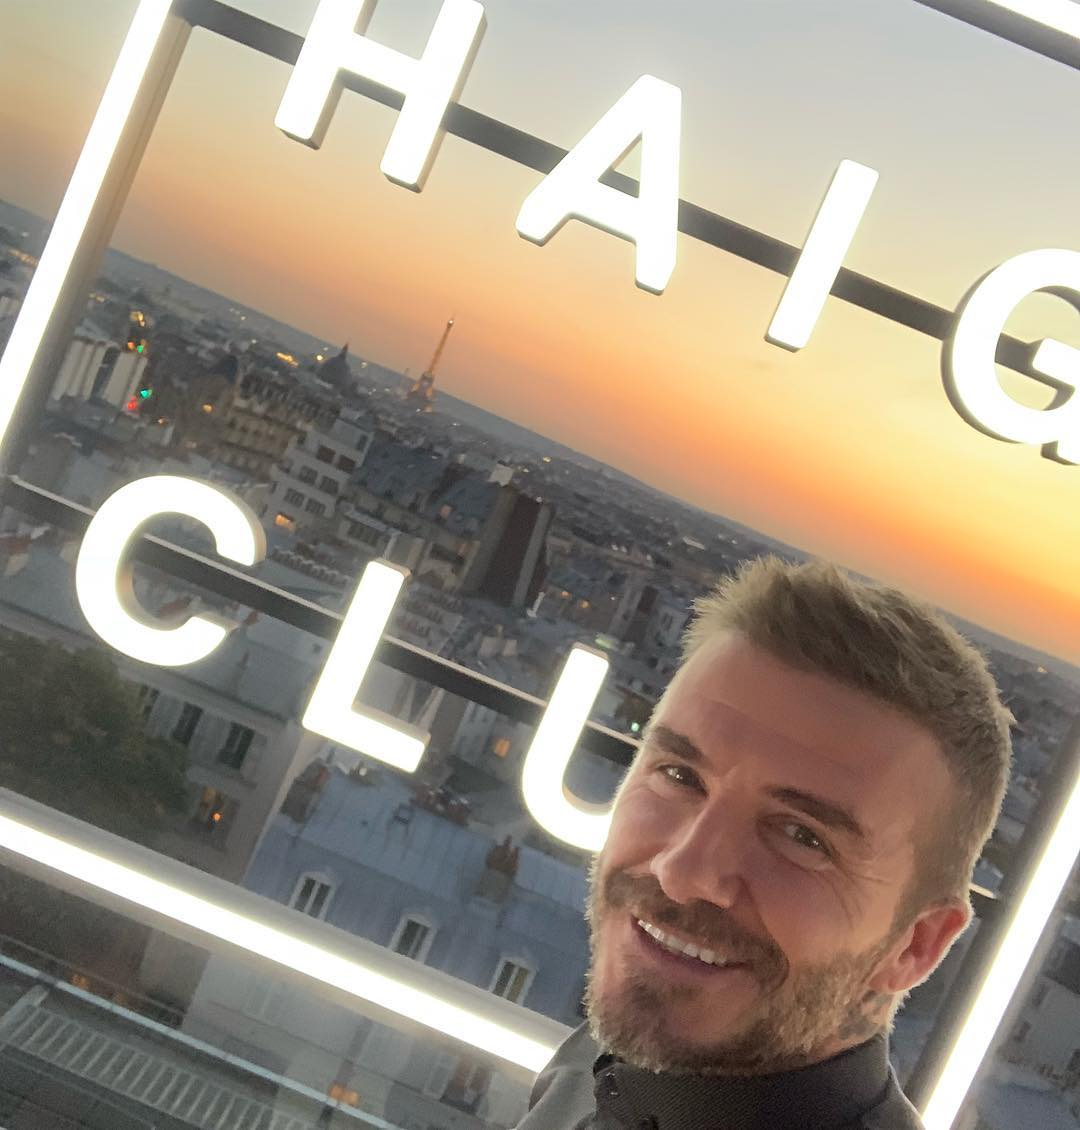 David Beckham Instagram: Great  launch in Paris last night thank you to the whole team for the support  ...